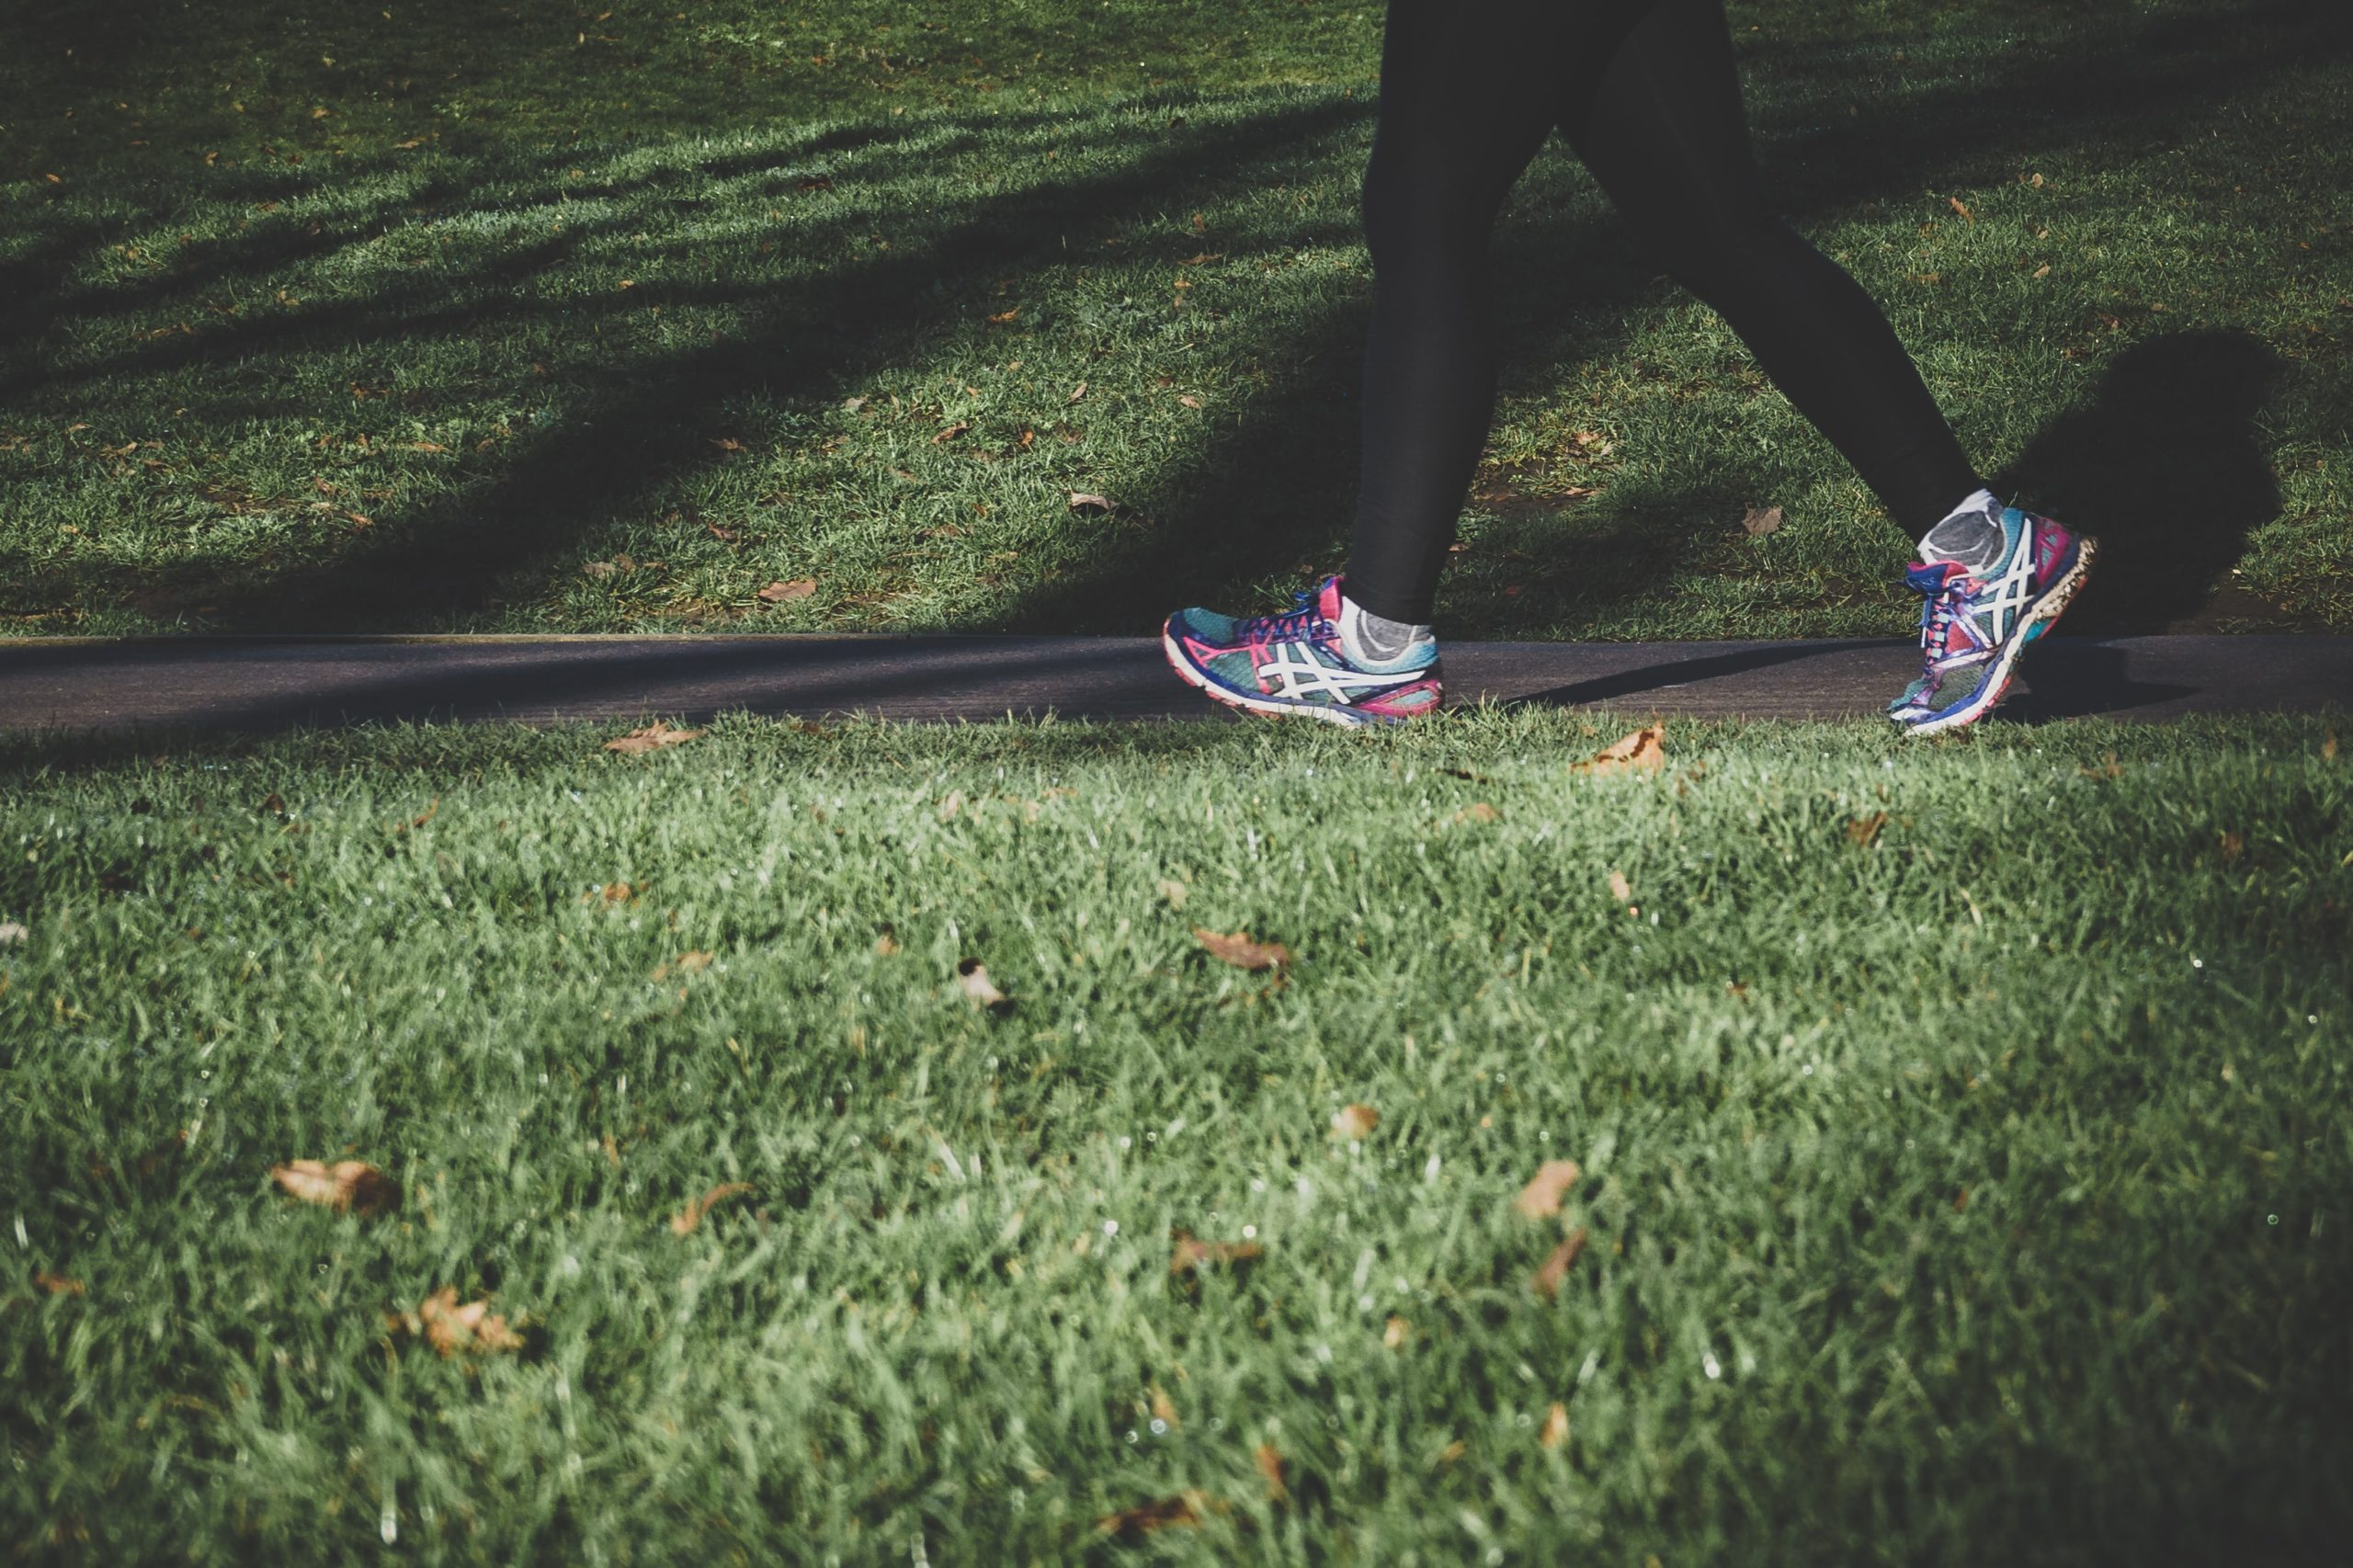 Best way to lose weight? walking or jogging